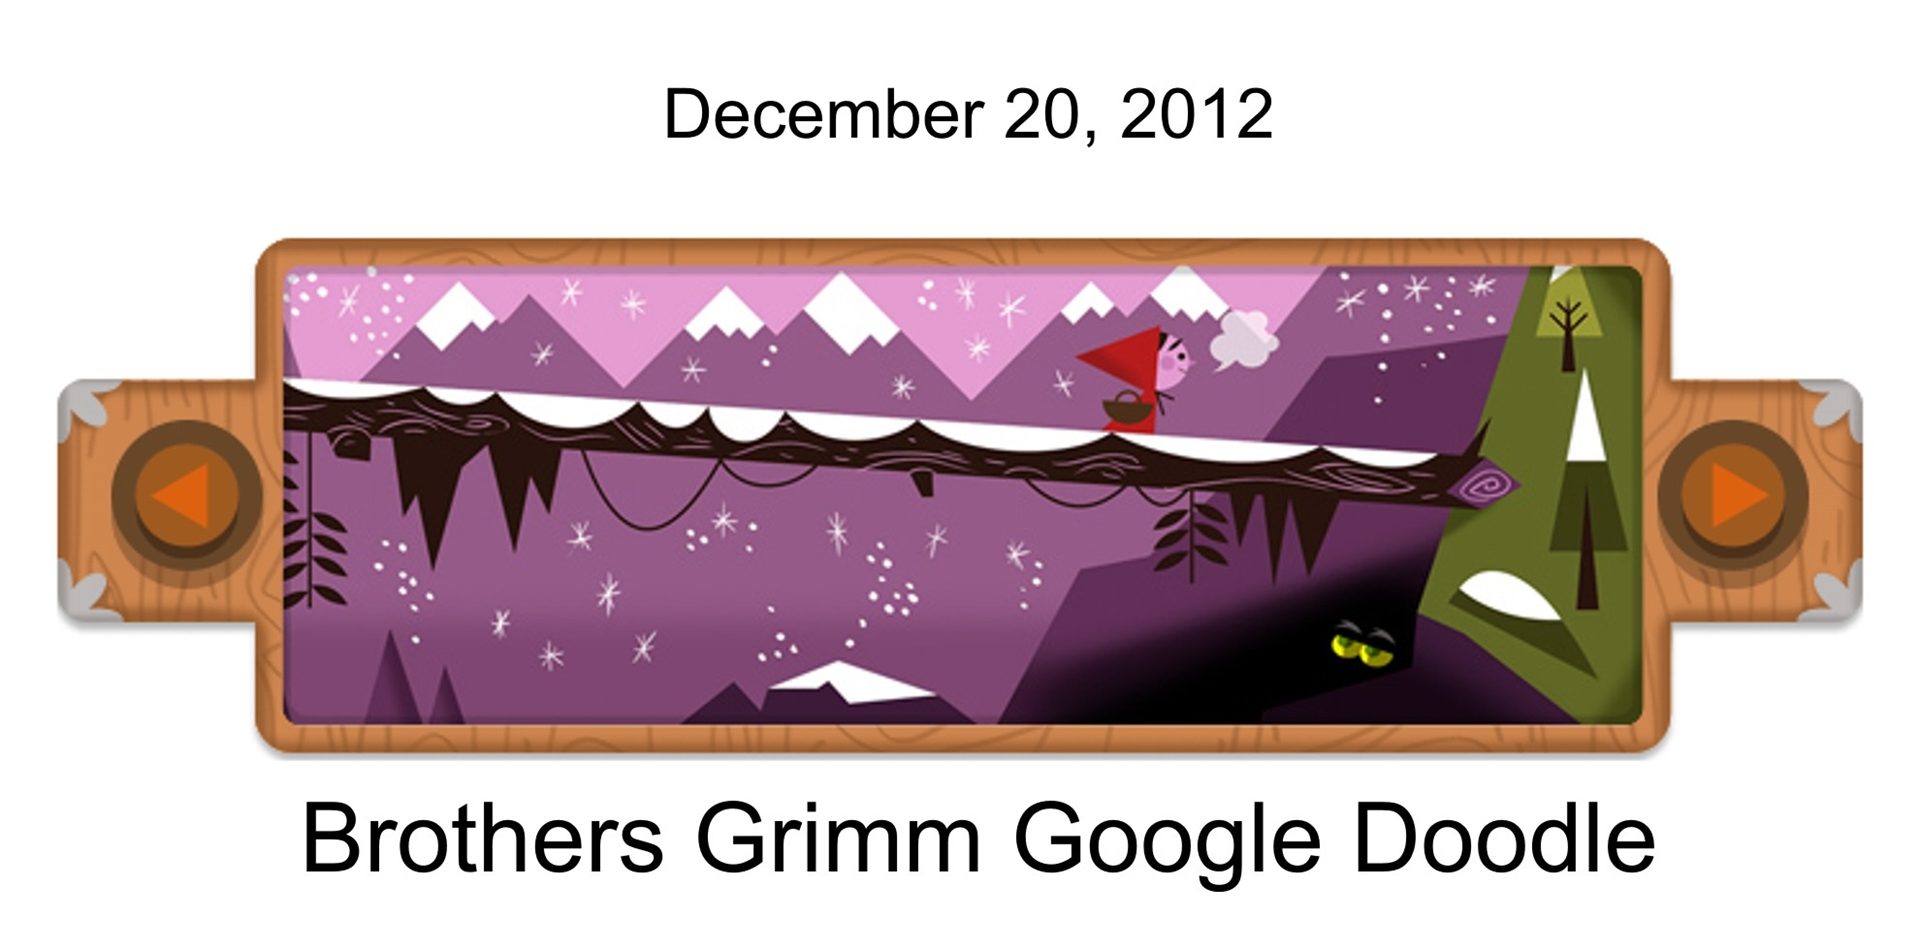 How Does The Brothers Grimm Google Doodle Work